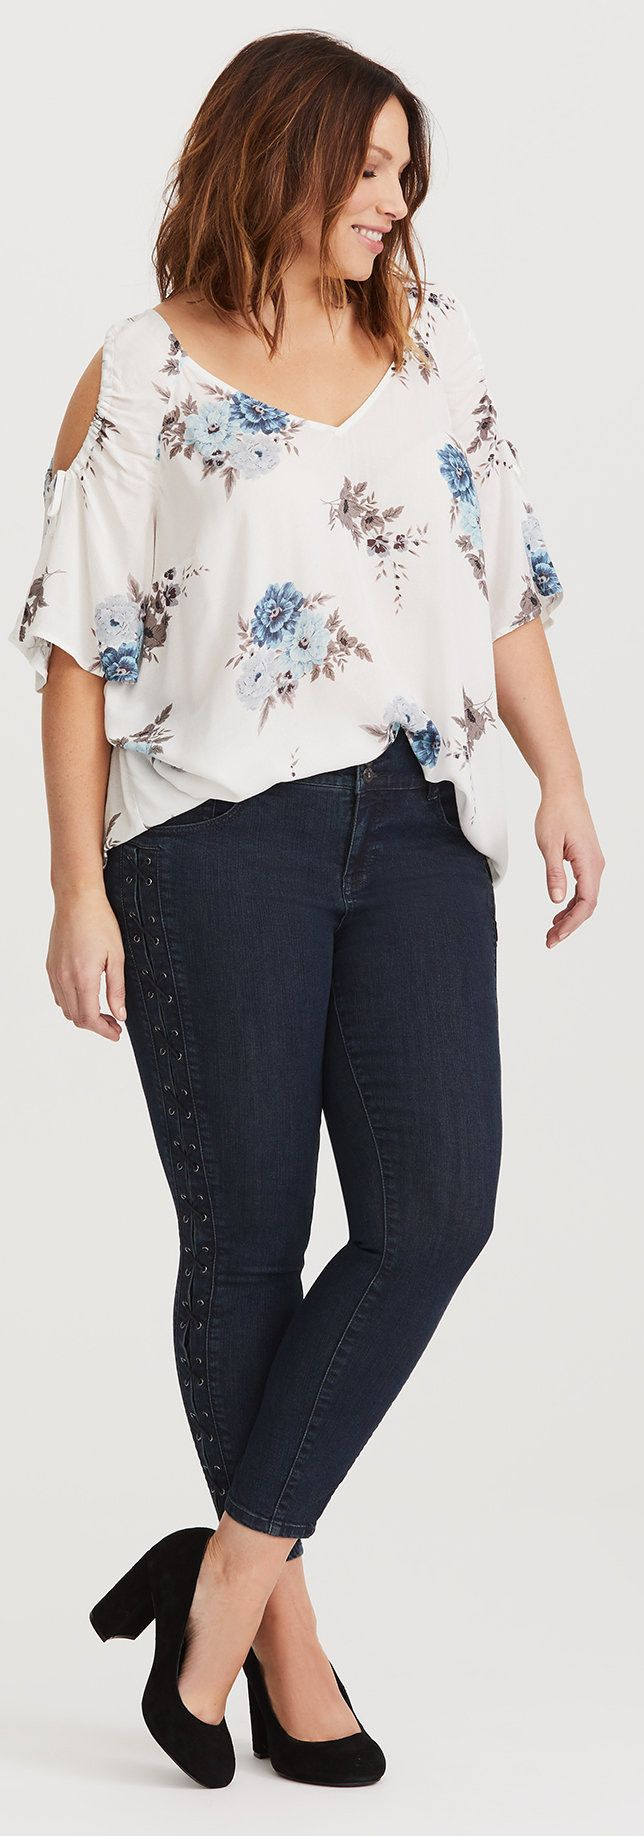 Jeggings - Medium Wash with Lace-Up Sides Plus Size